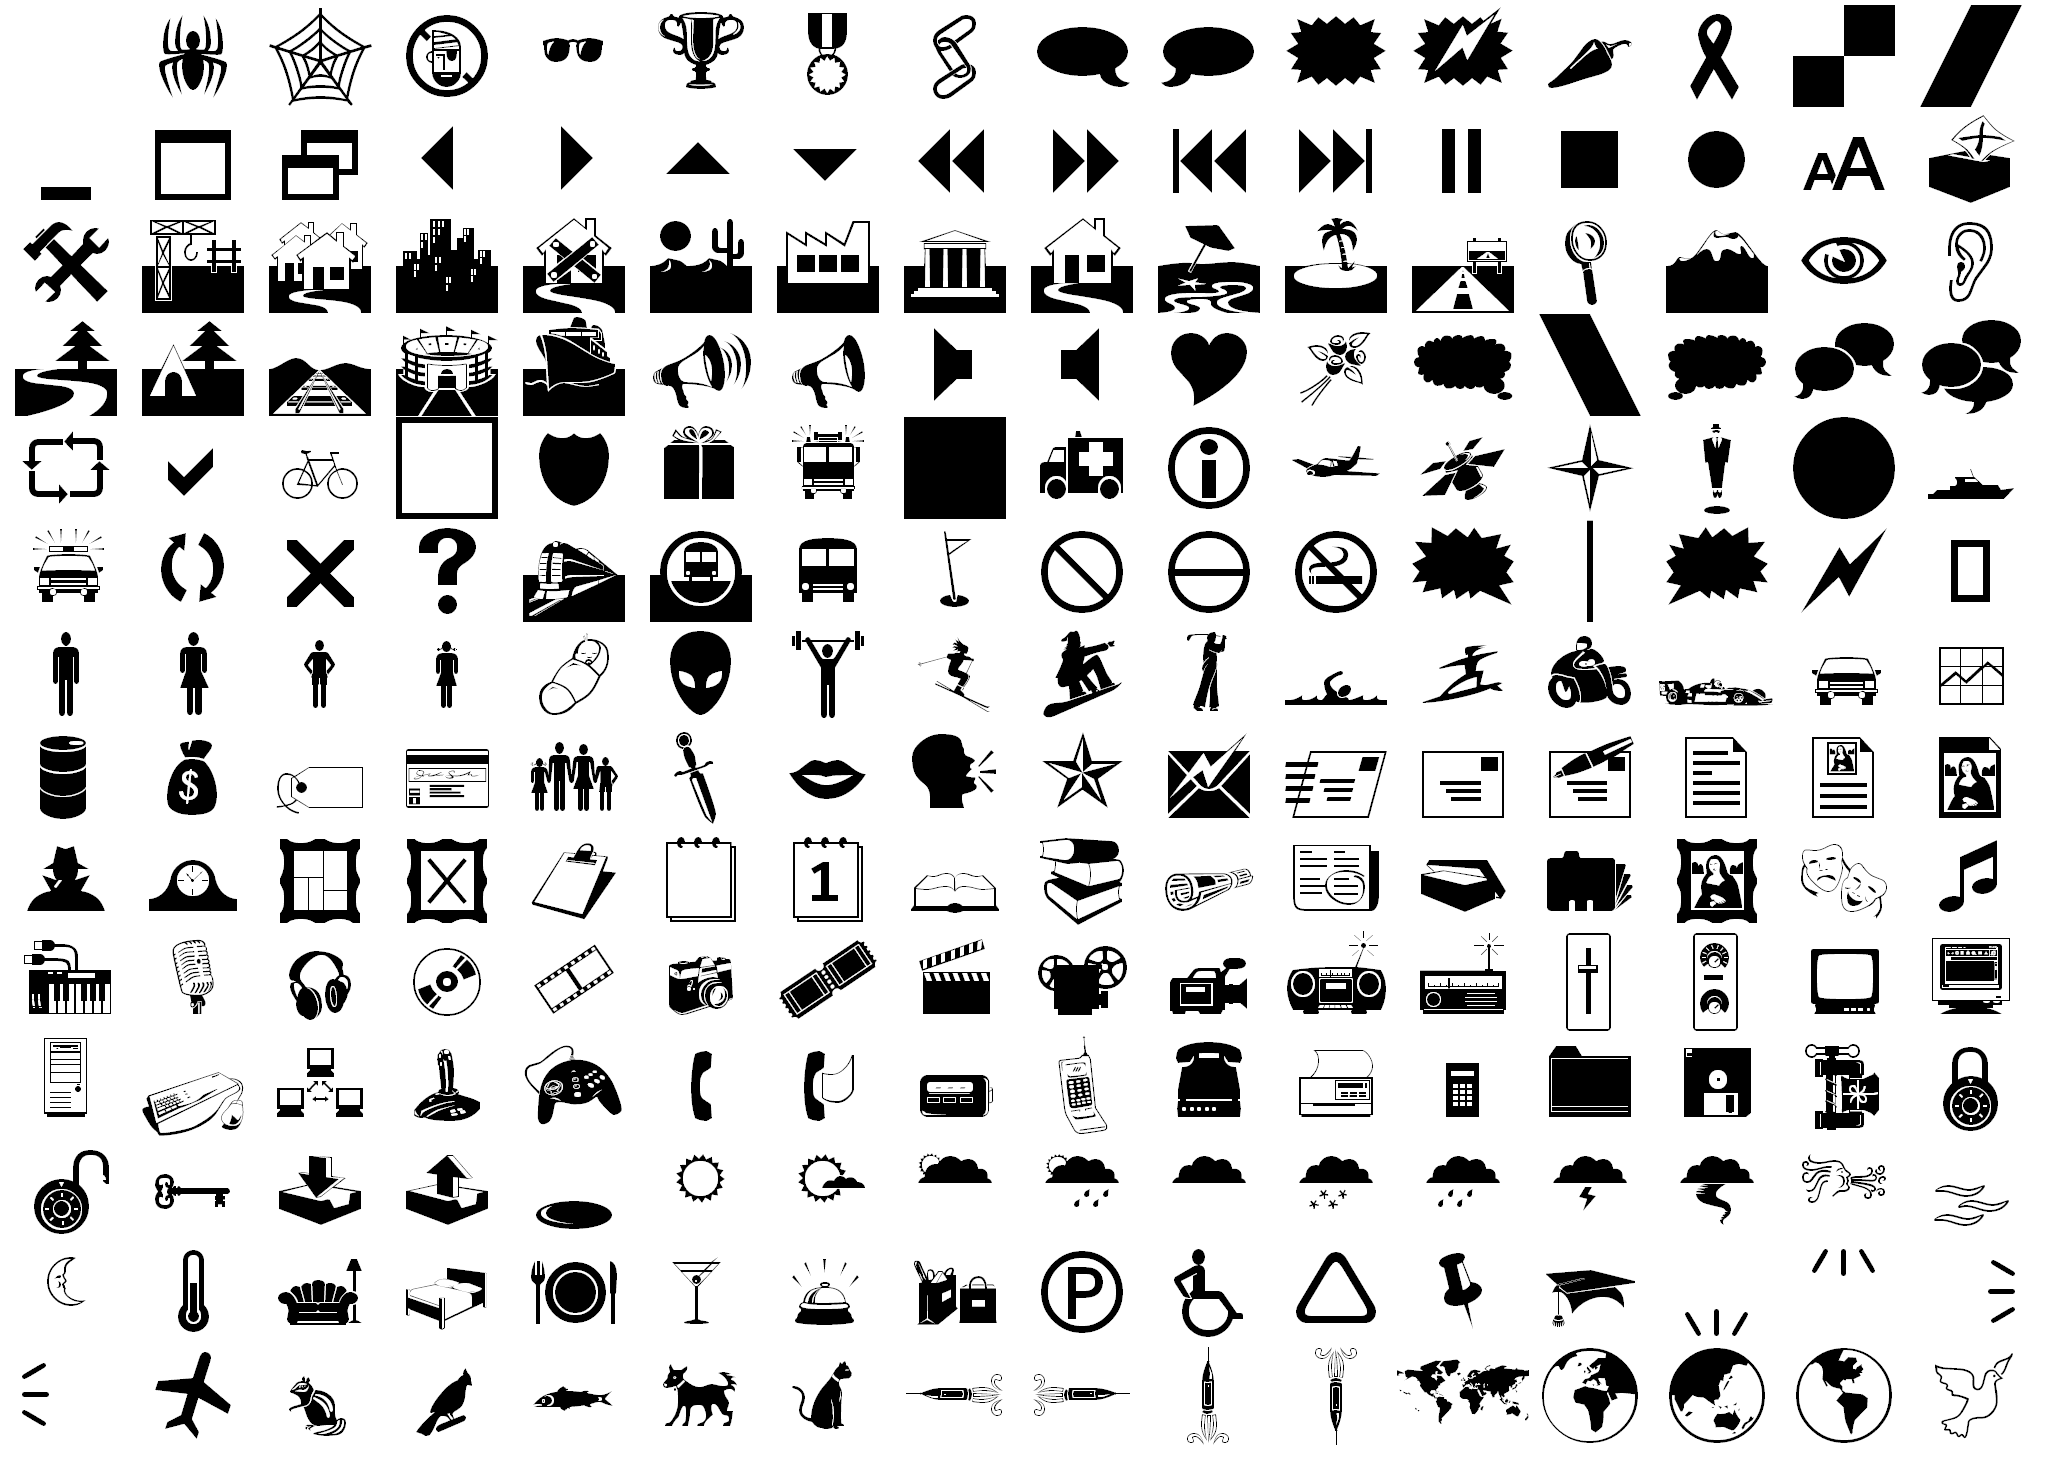 File:Webdings-big.png - Wikimedia Commons